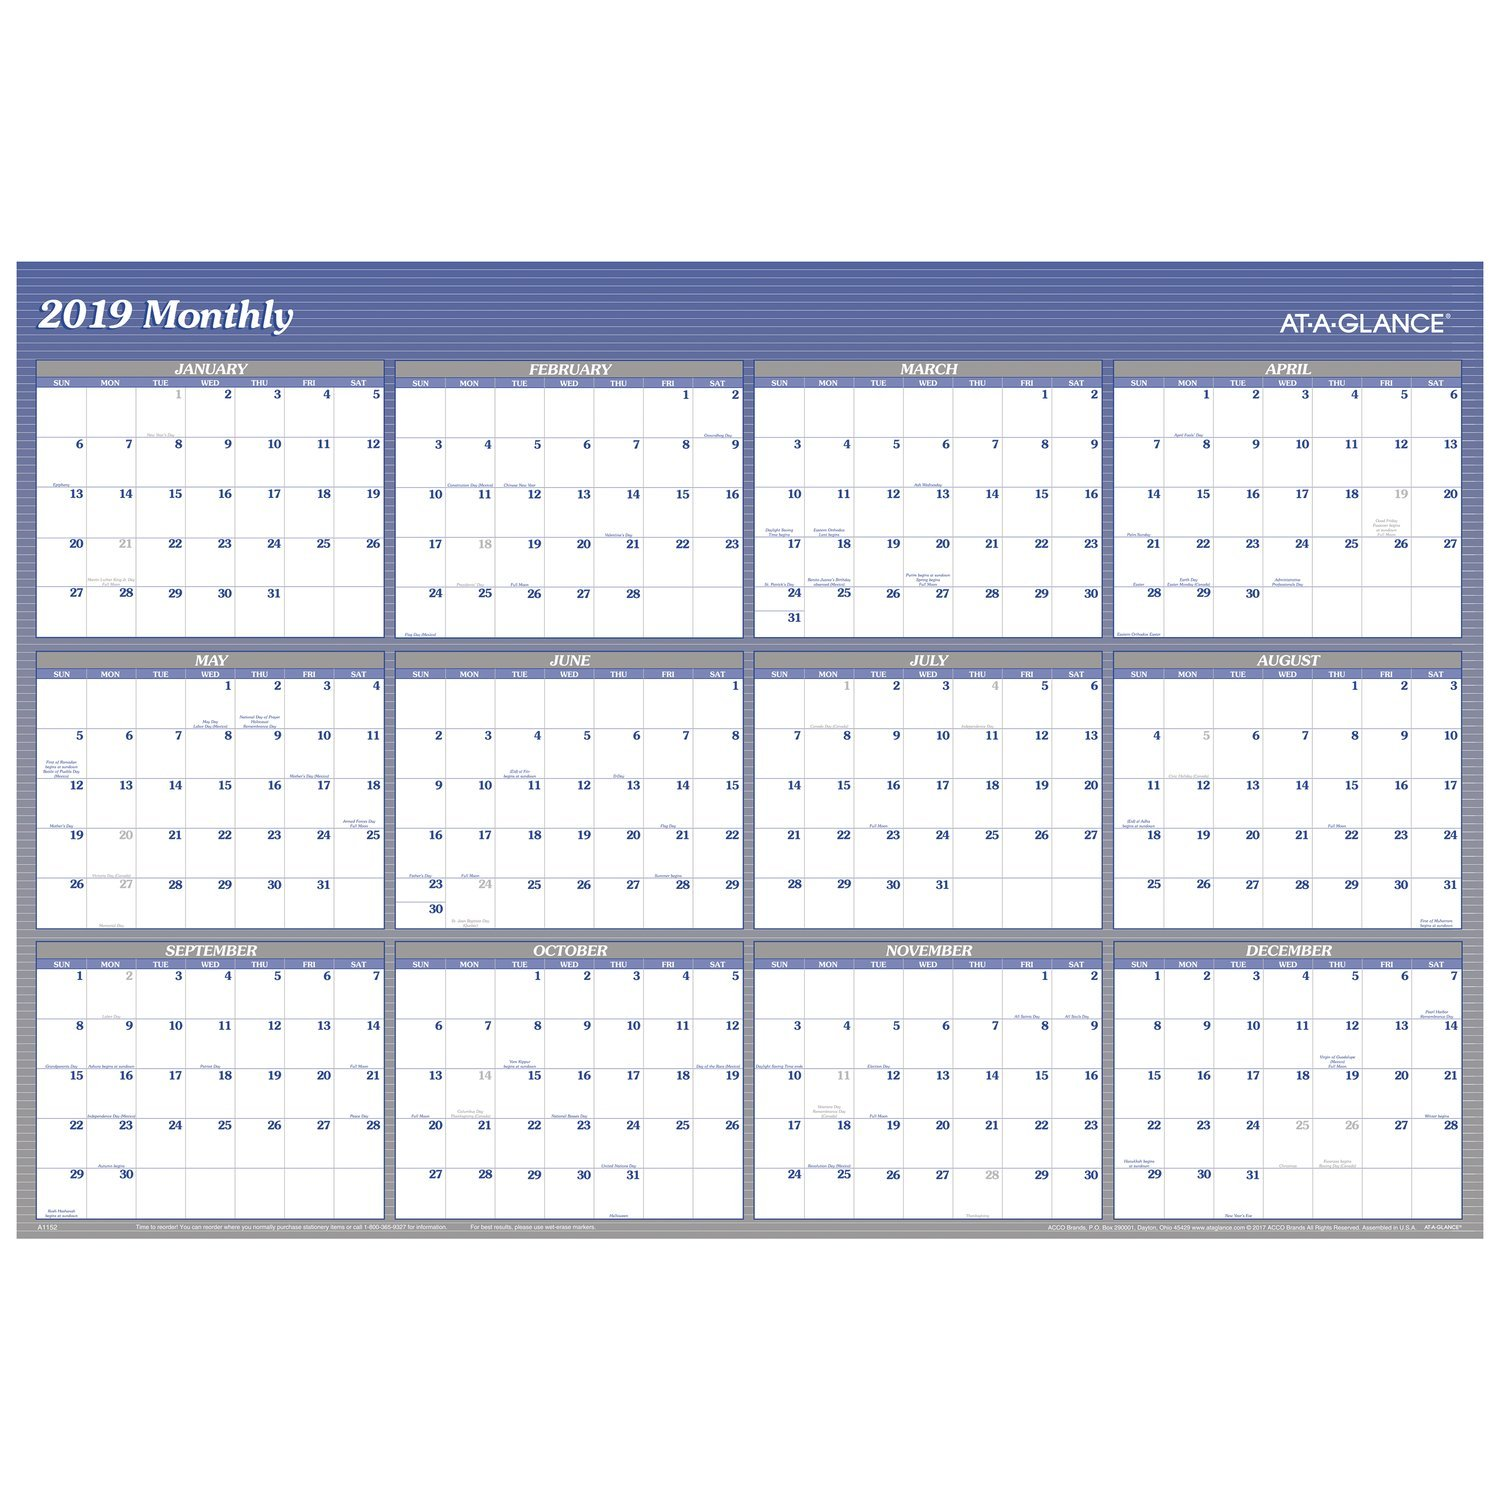 at-A-Glance A1152-18 Yearly Wall Planner, January 2019 - December 2019, 48'' x 32'', Vertical, Horizontal, Erasable, Reversible, Blue (A1152)